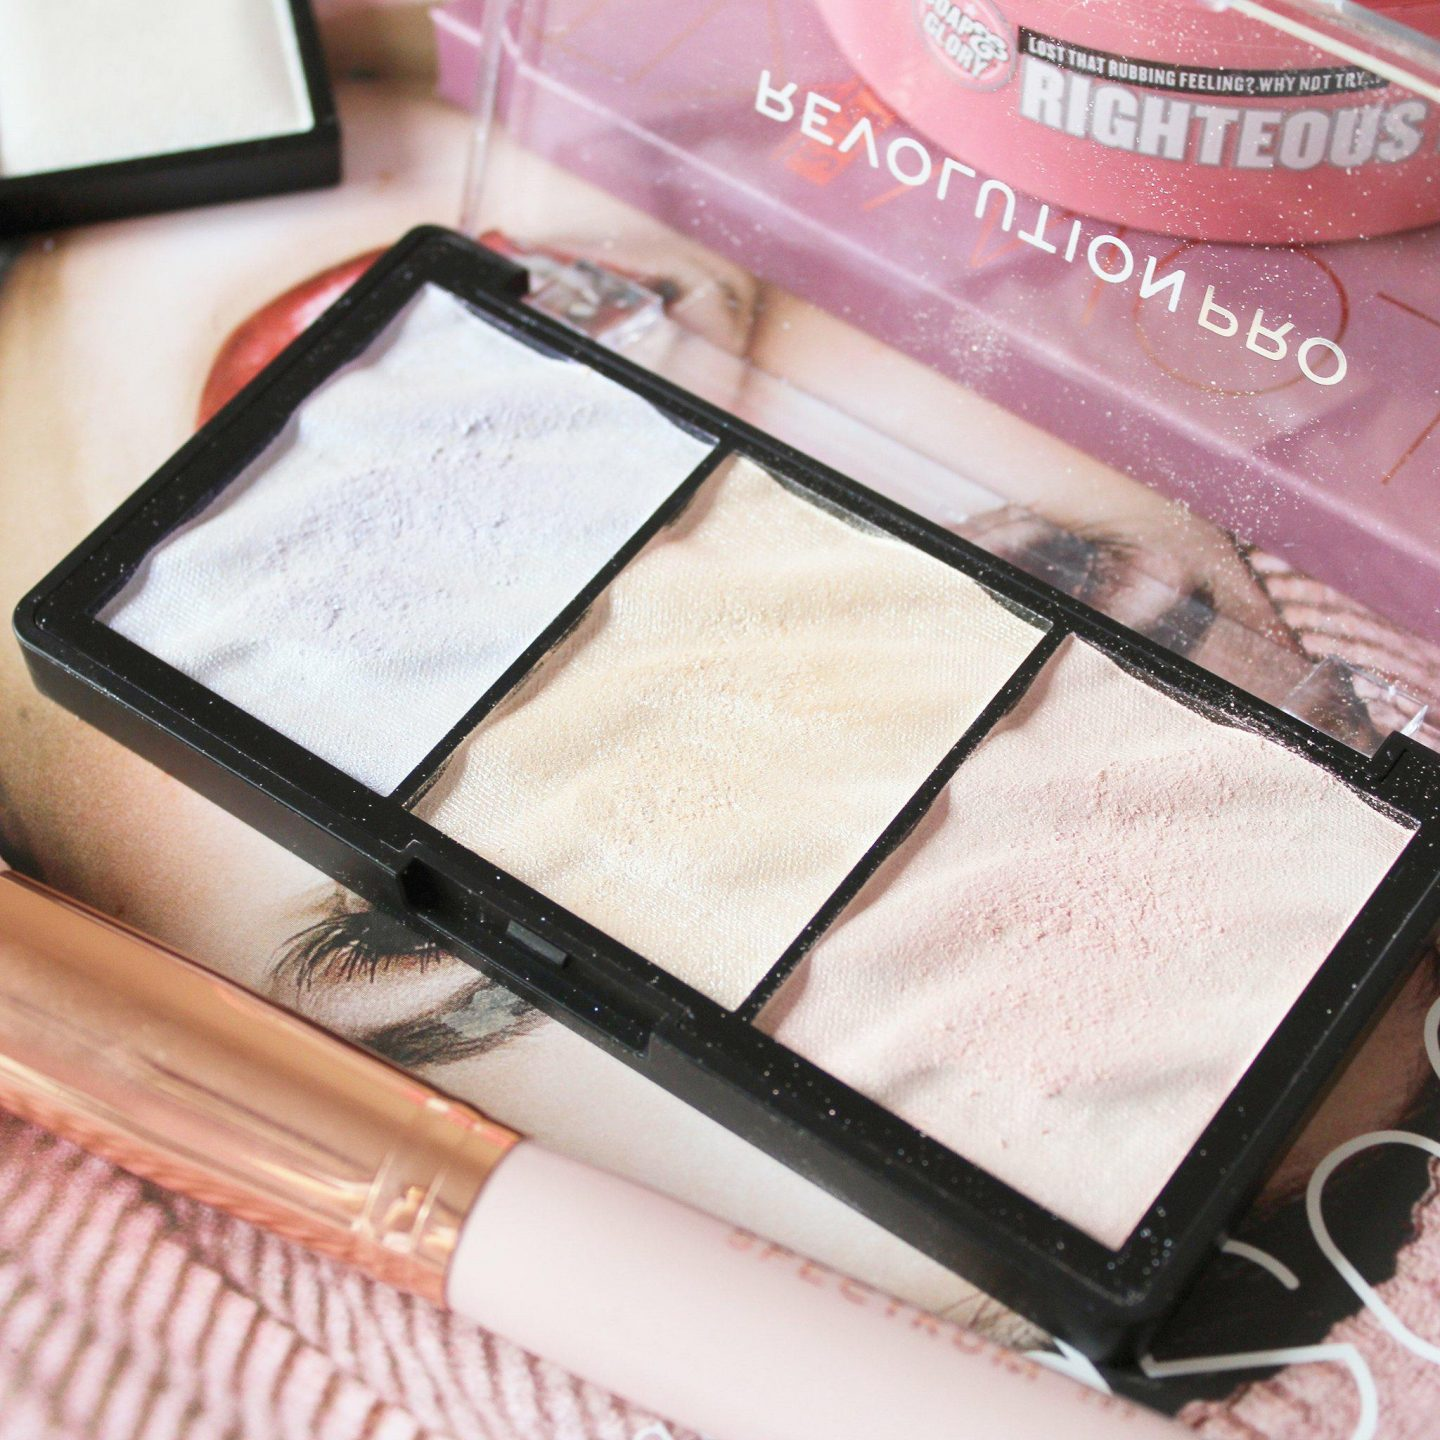 Revolution Pro Supreme Highlight Palette in Ice | Swatches & Review